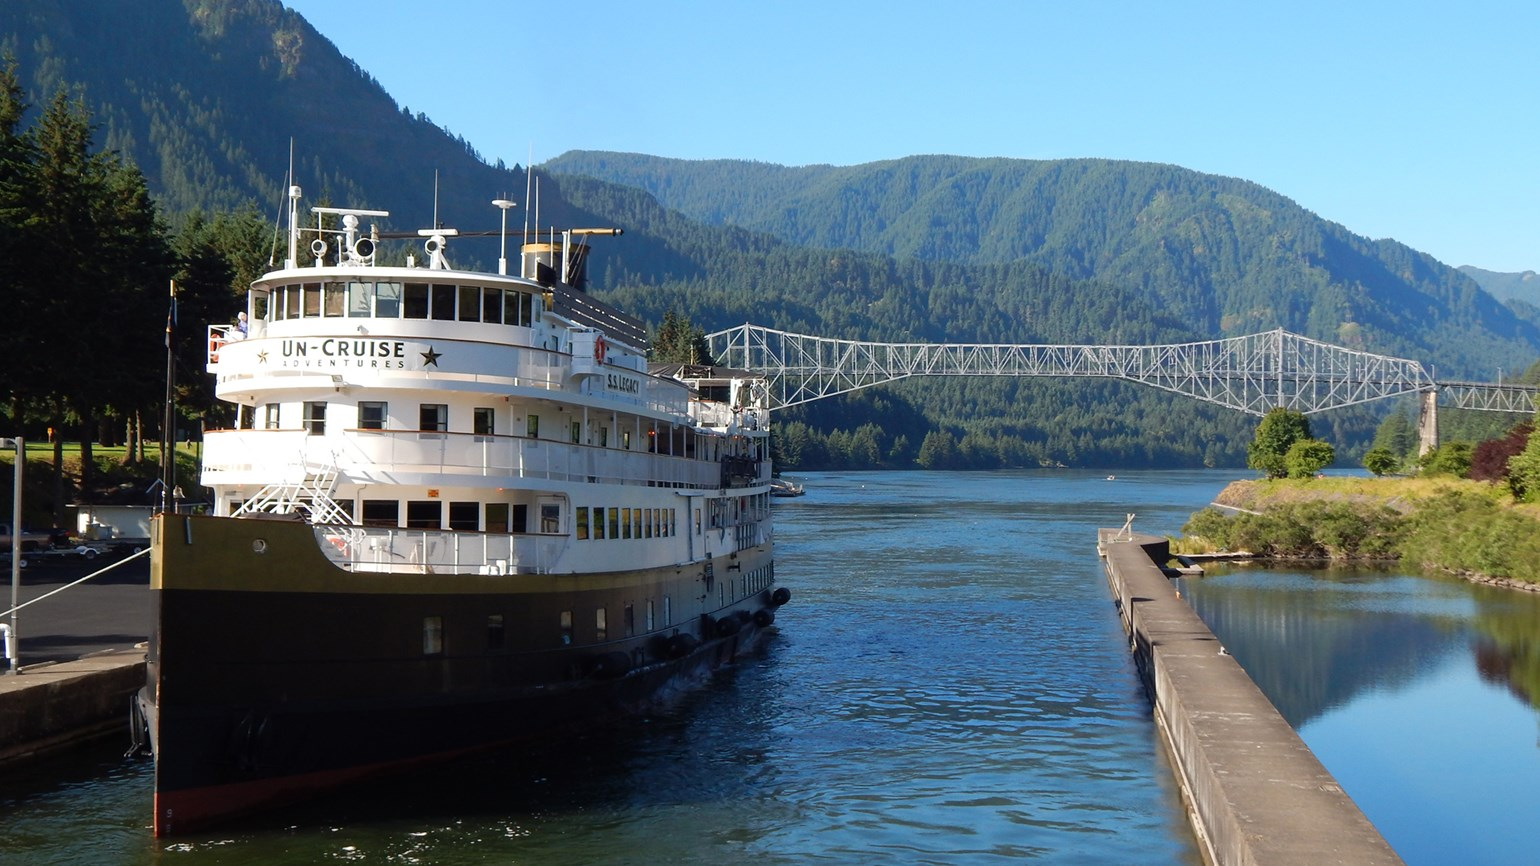 UnCruise Adventures Bringing The Legacy Back To Alaska Travel Weekly - Legacy cruise ship